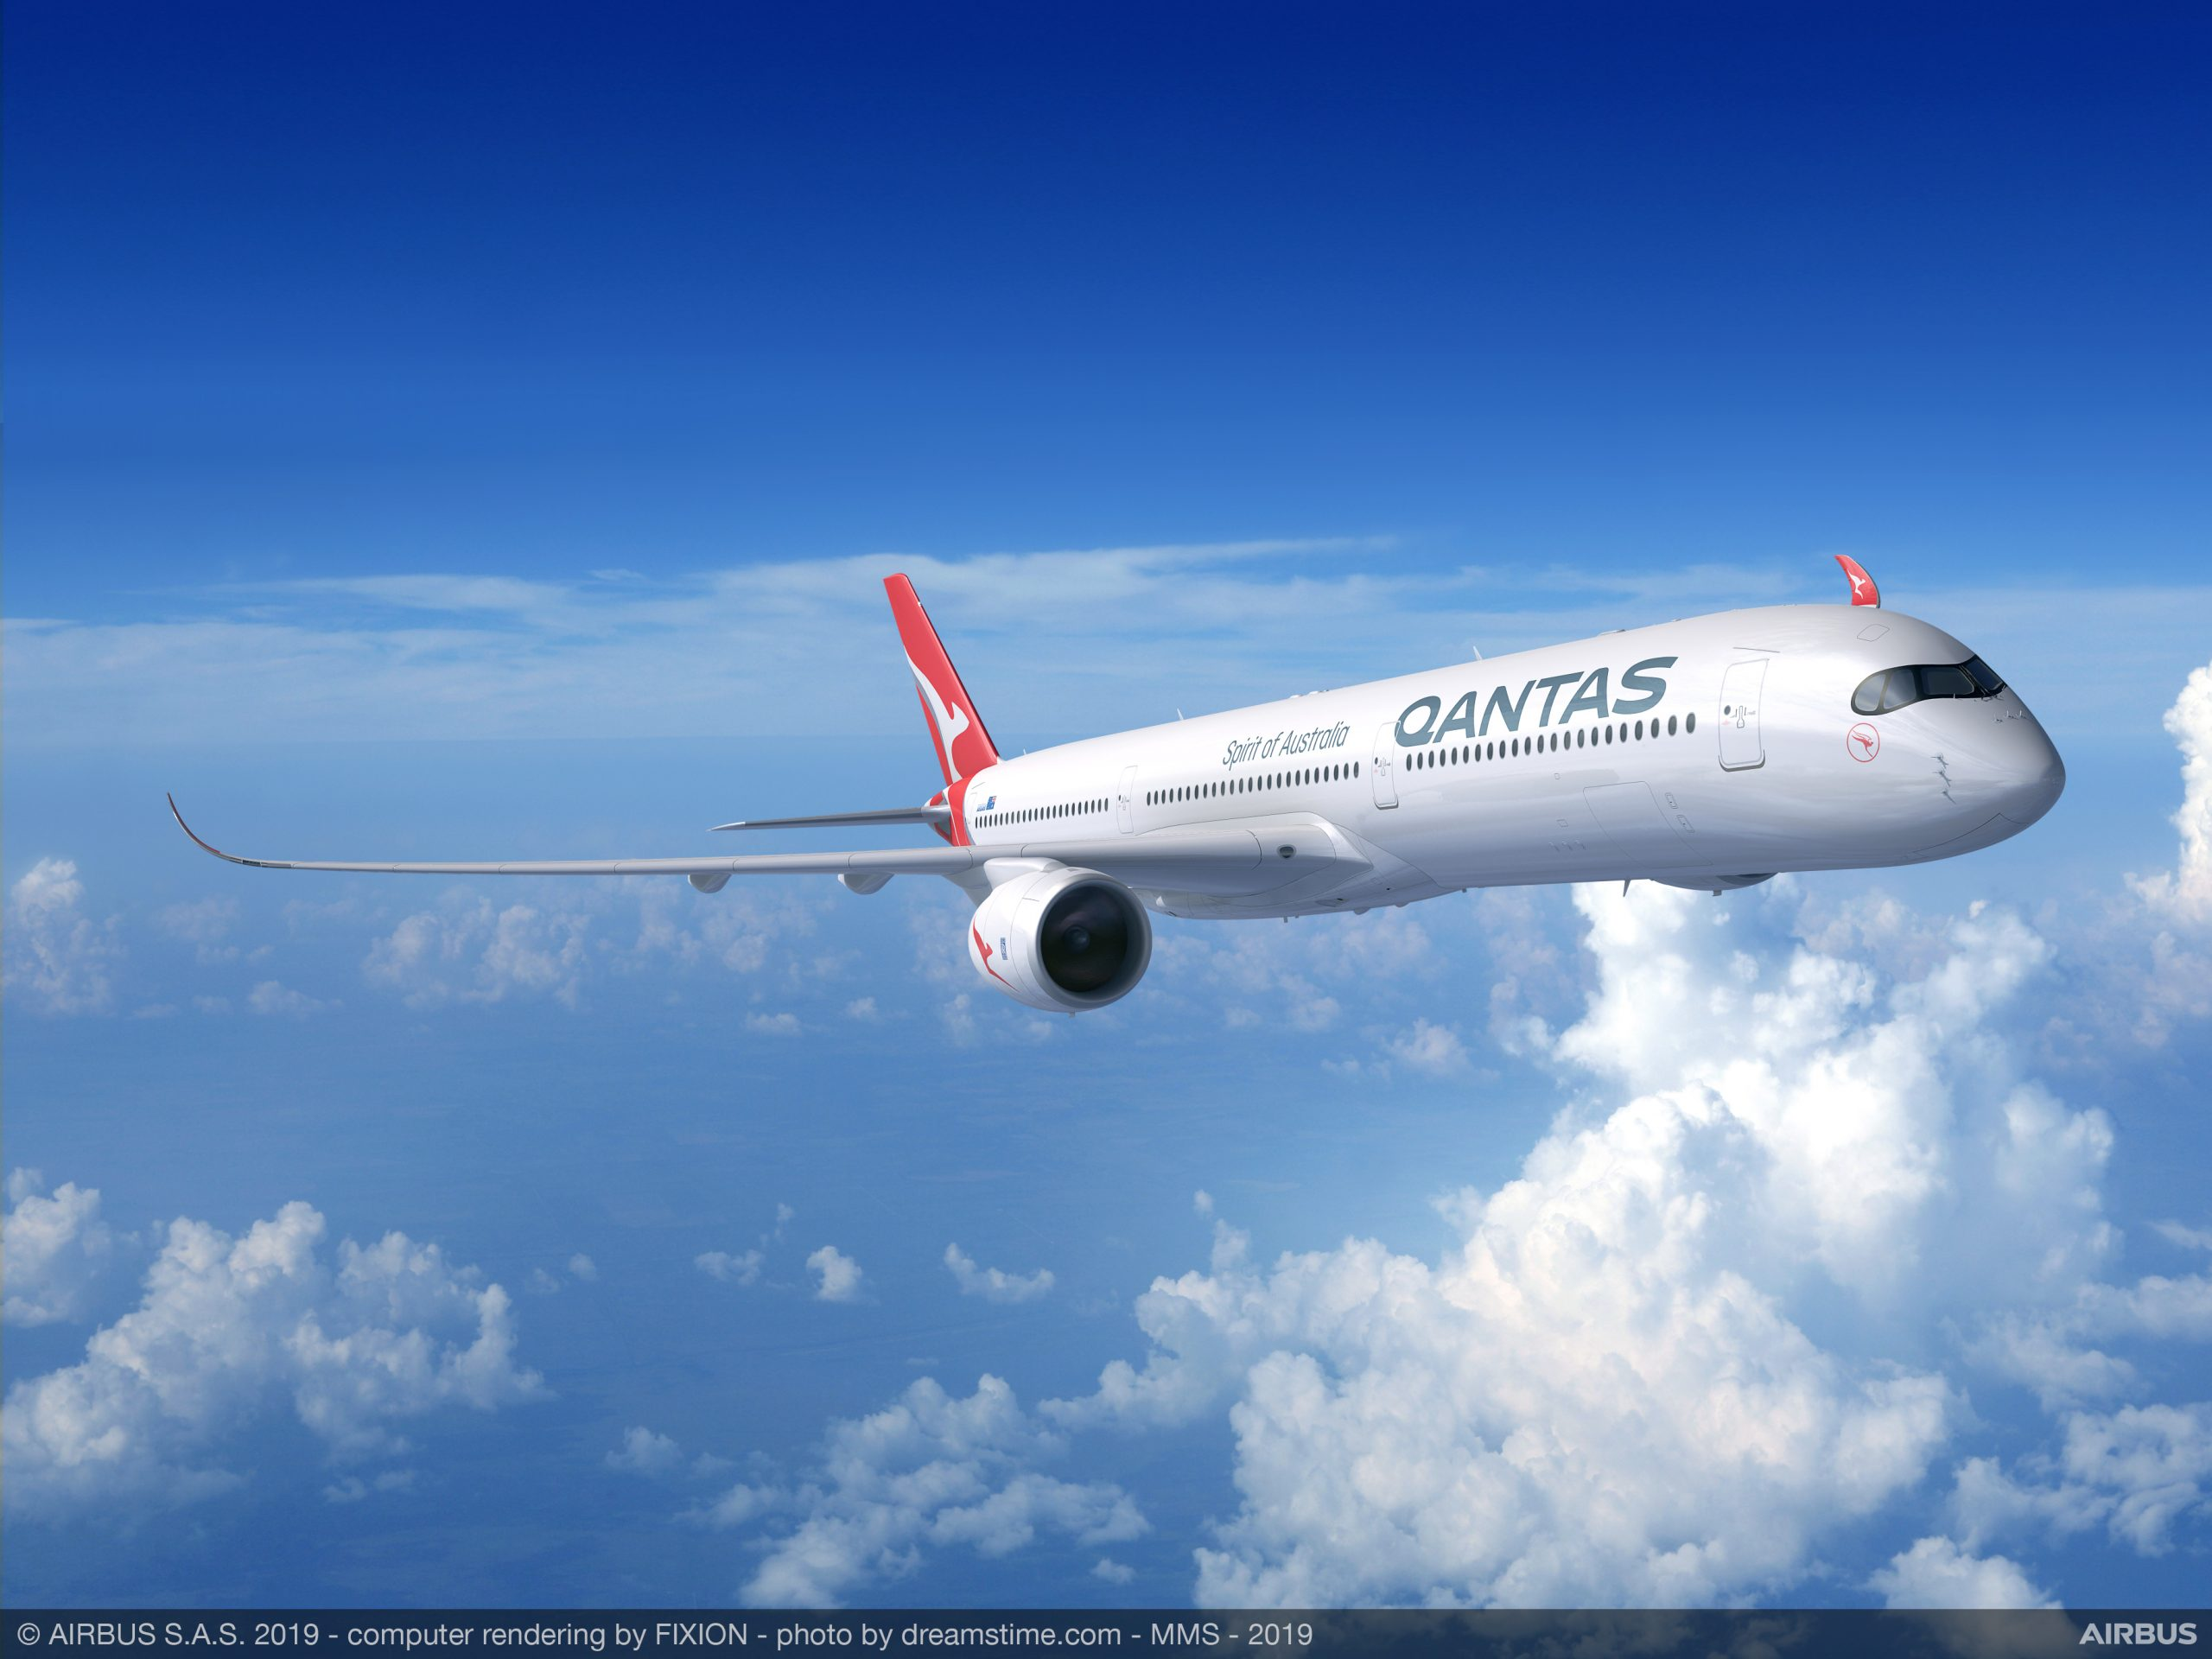 QANTAS Project Sunrise aircraft Selection, Airbus A350-1000